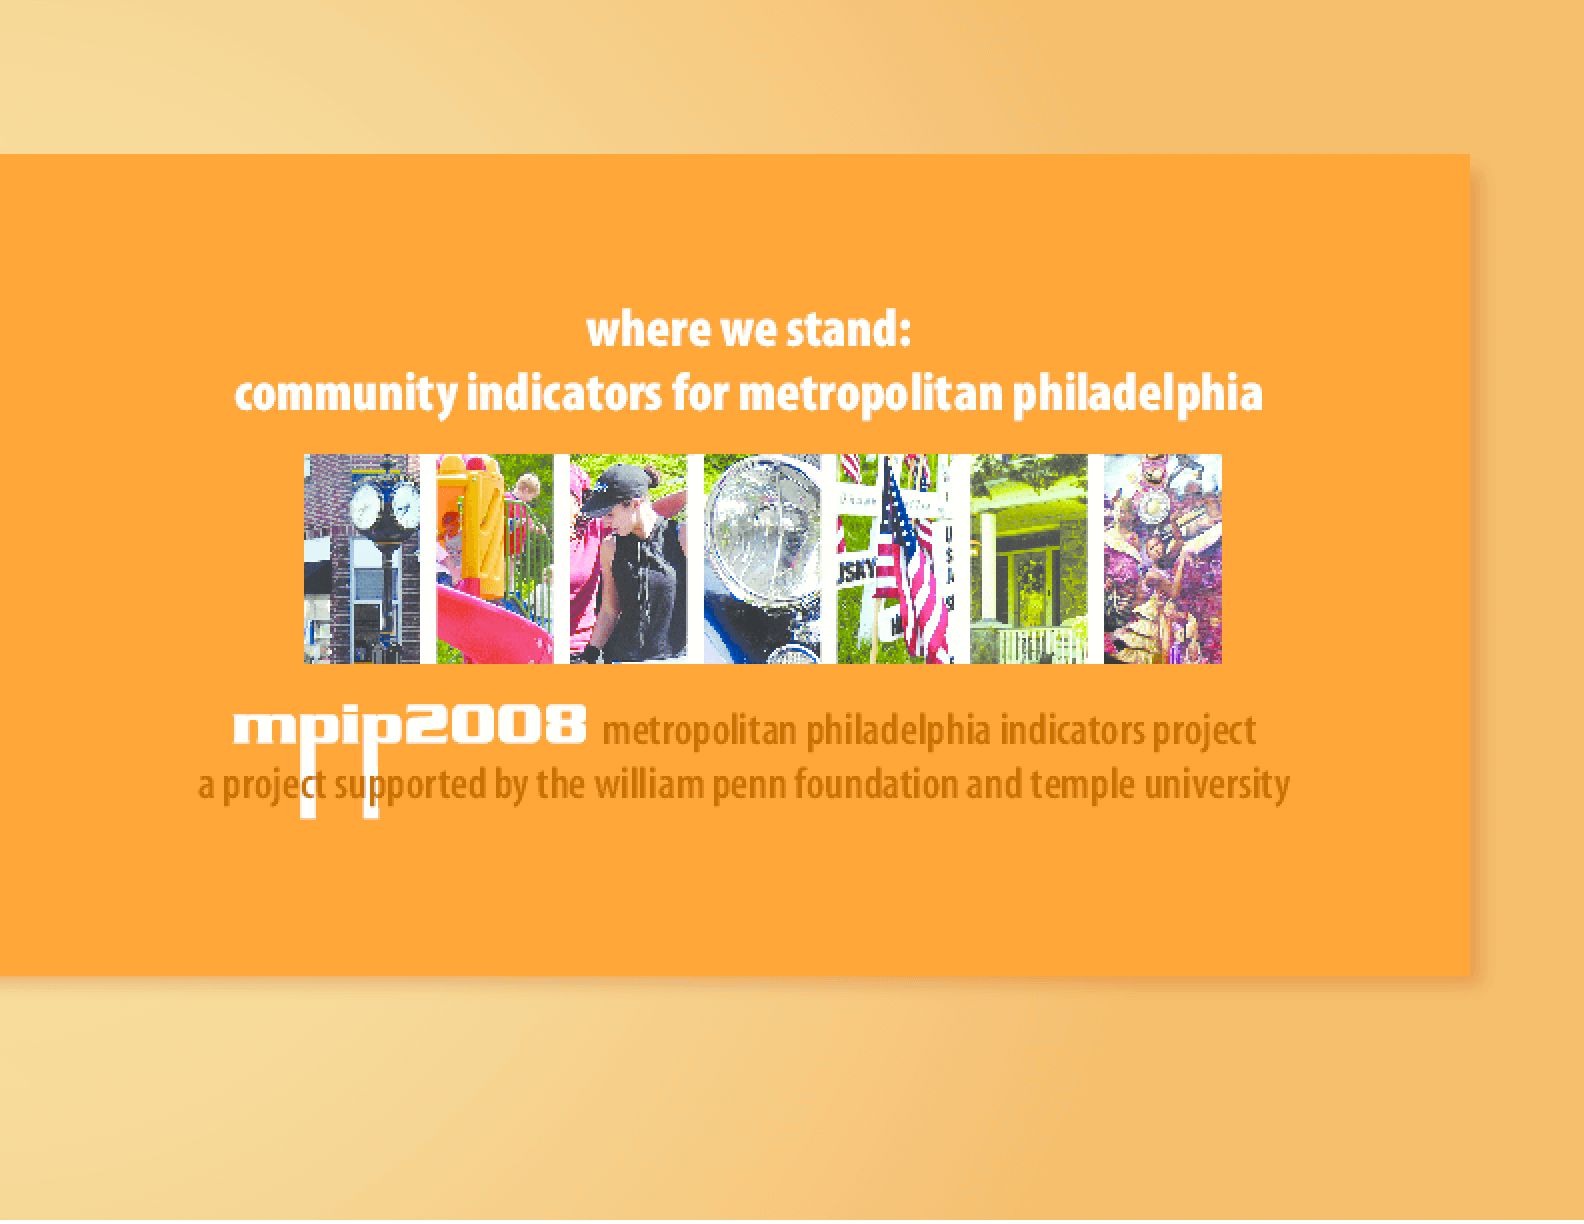 Where We Stand: Community Indicators for Metropolitan Philadelphia